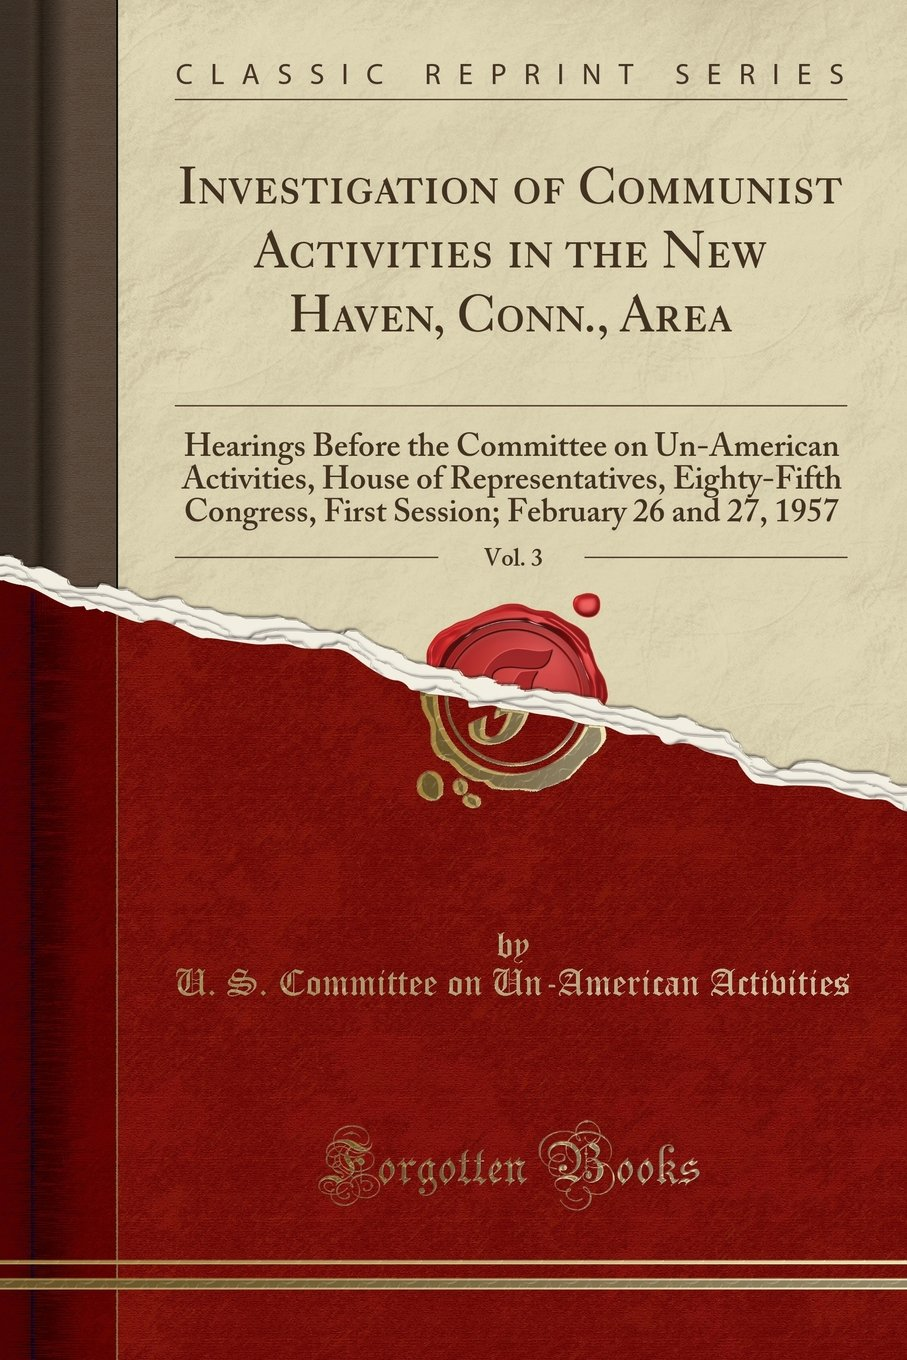 Download Investigation of Communist Activities in the New Haven, Conn., Area, Vol. 3: Hearings Before the Committee on Un-American Activities, House of ... February 26 and 27, 1957 (Classic Reprint) ebook